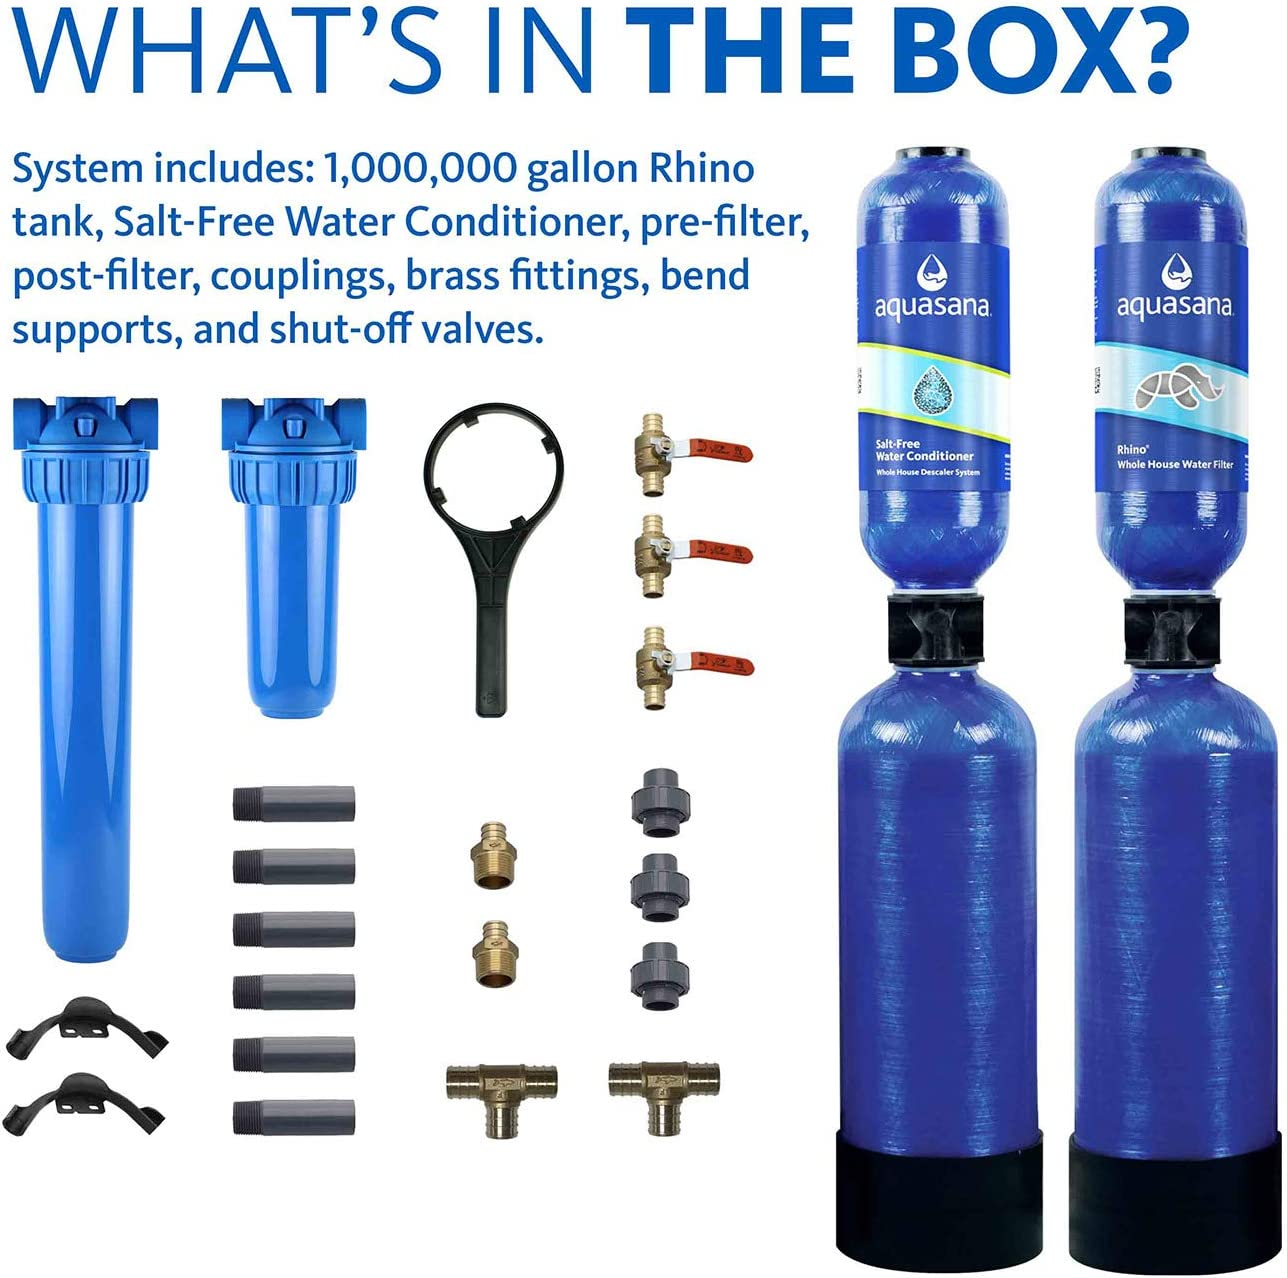 Aquasana EQ-1000-AST Water Conditioner - The Components